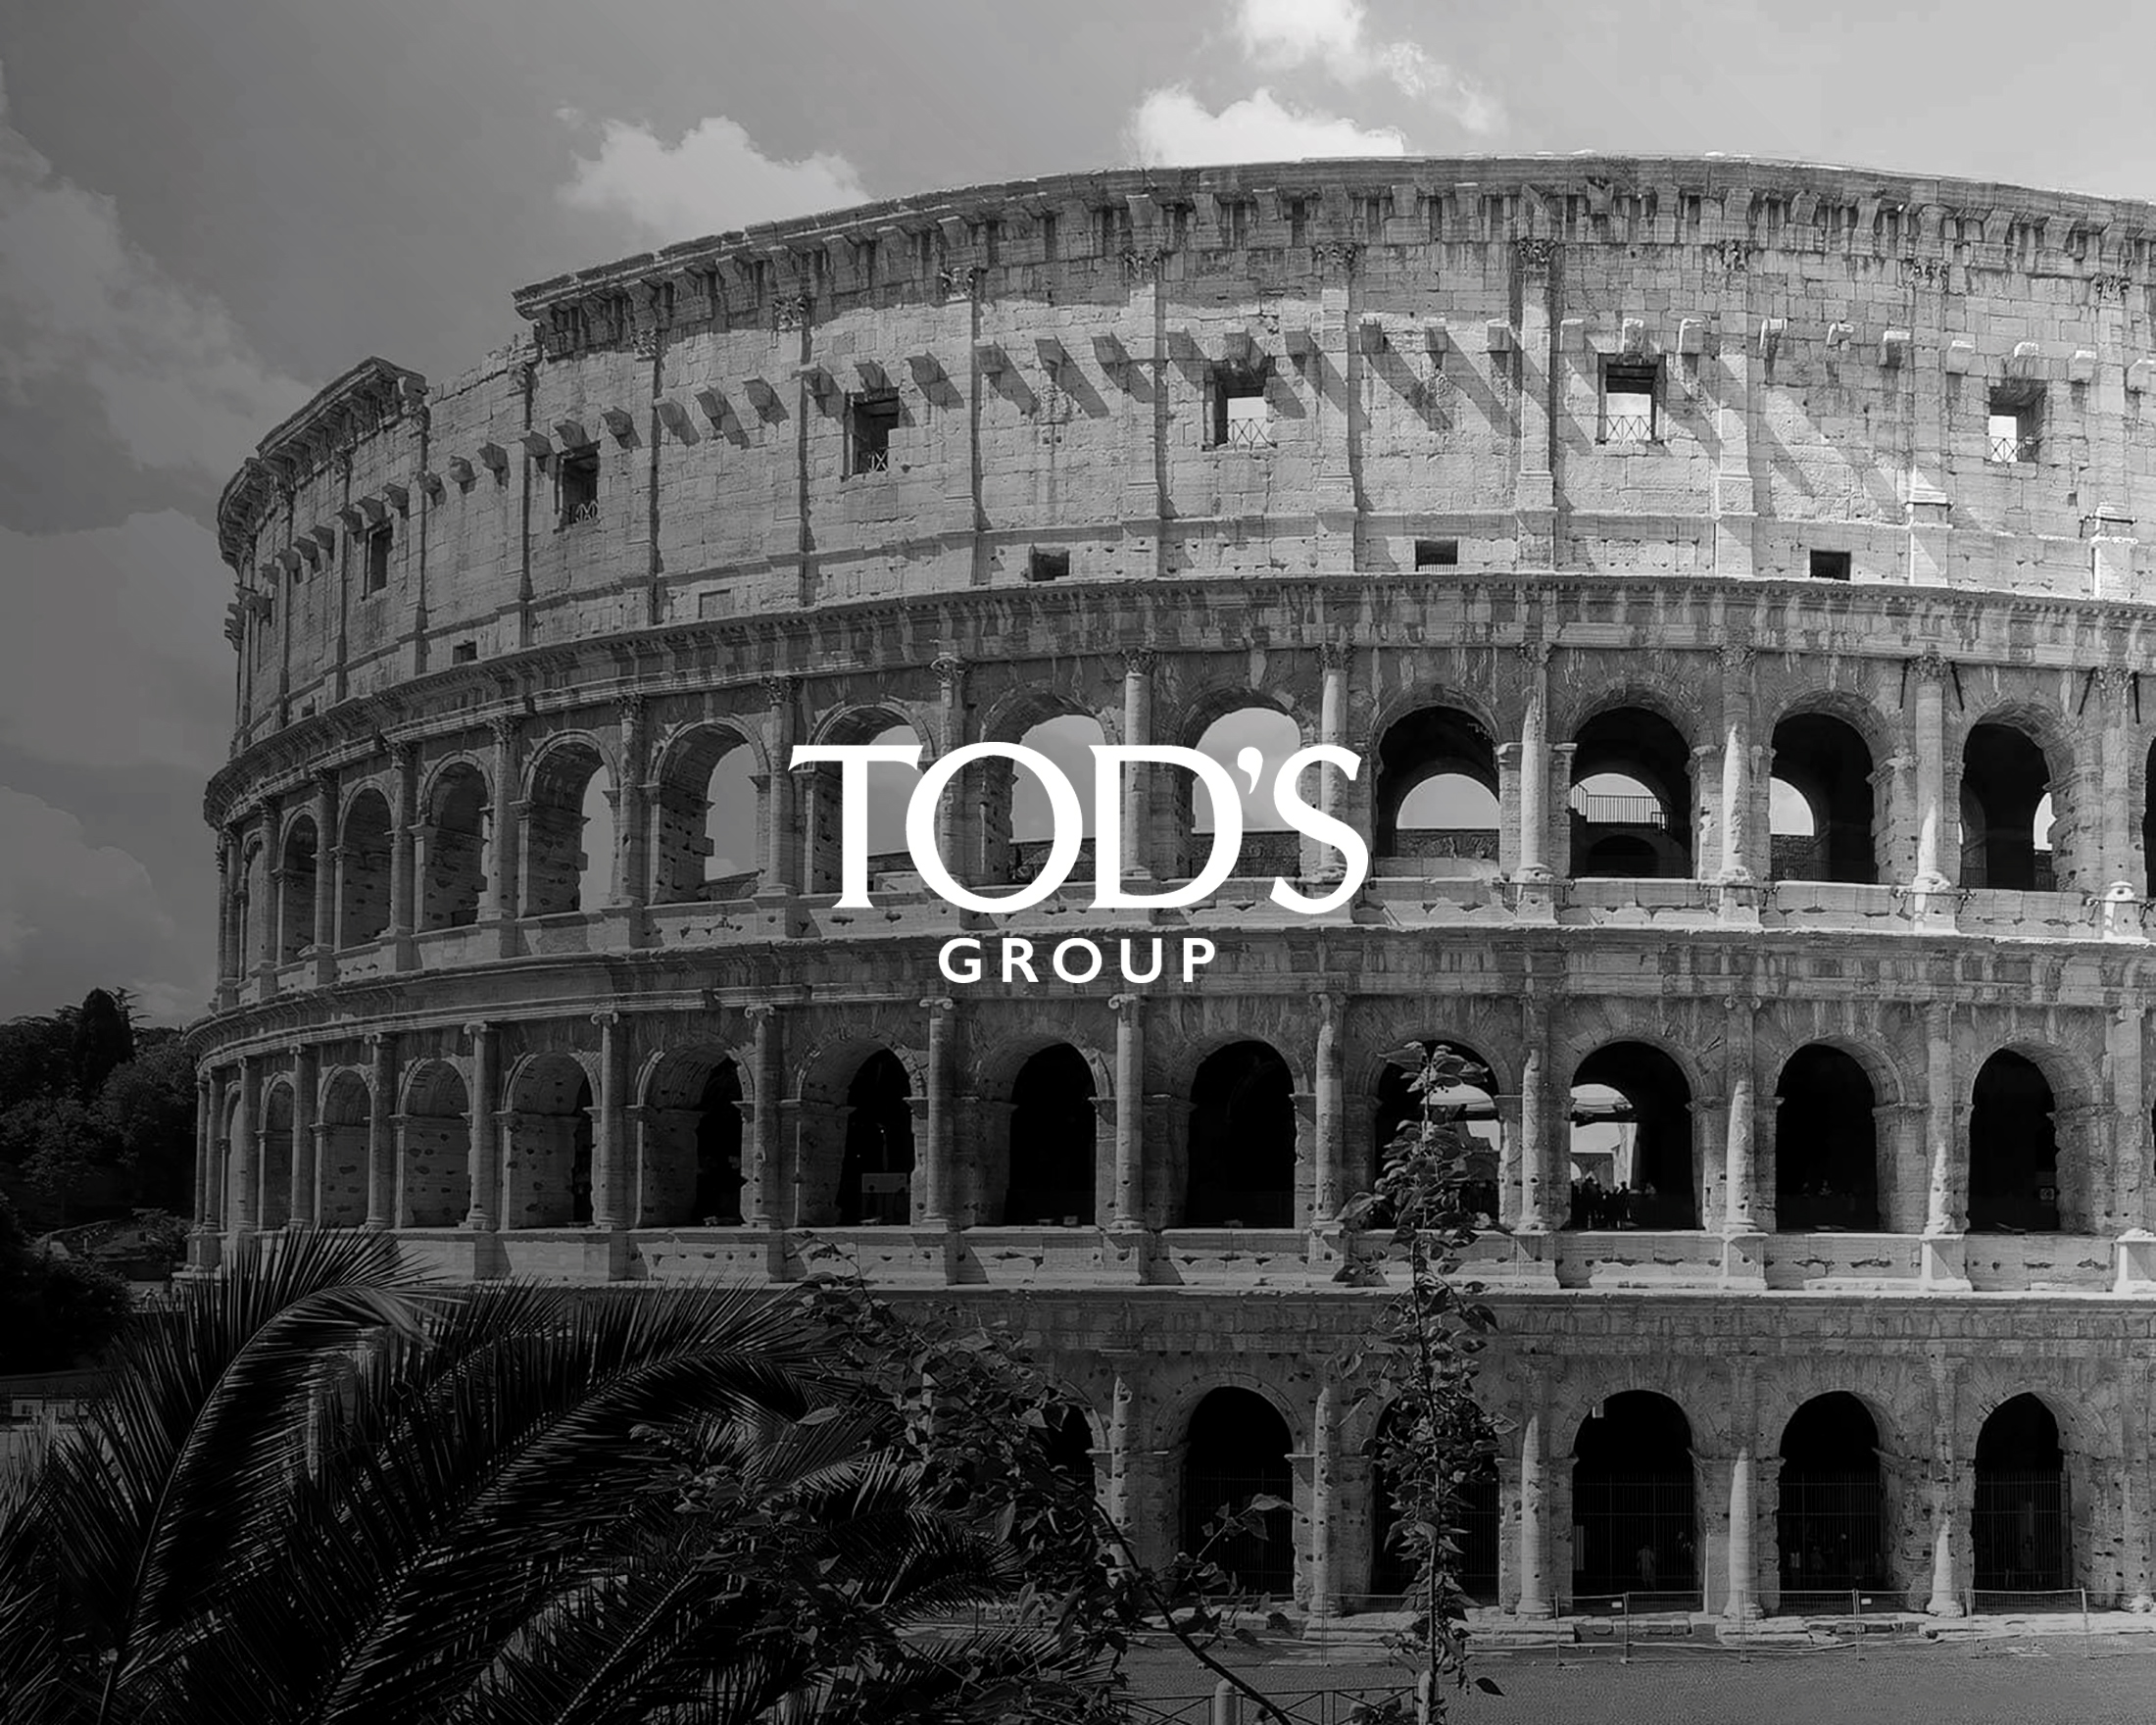 Della Valle Family Owners of Tod's Group Donates 5M Euros To Families of Health Personal Lost to COVID-19